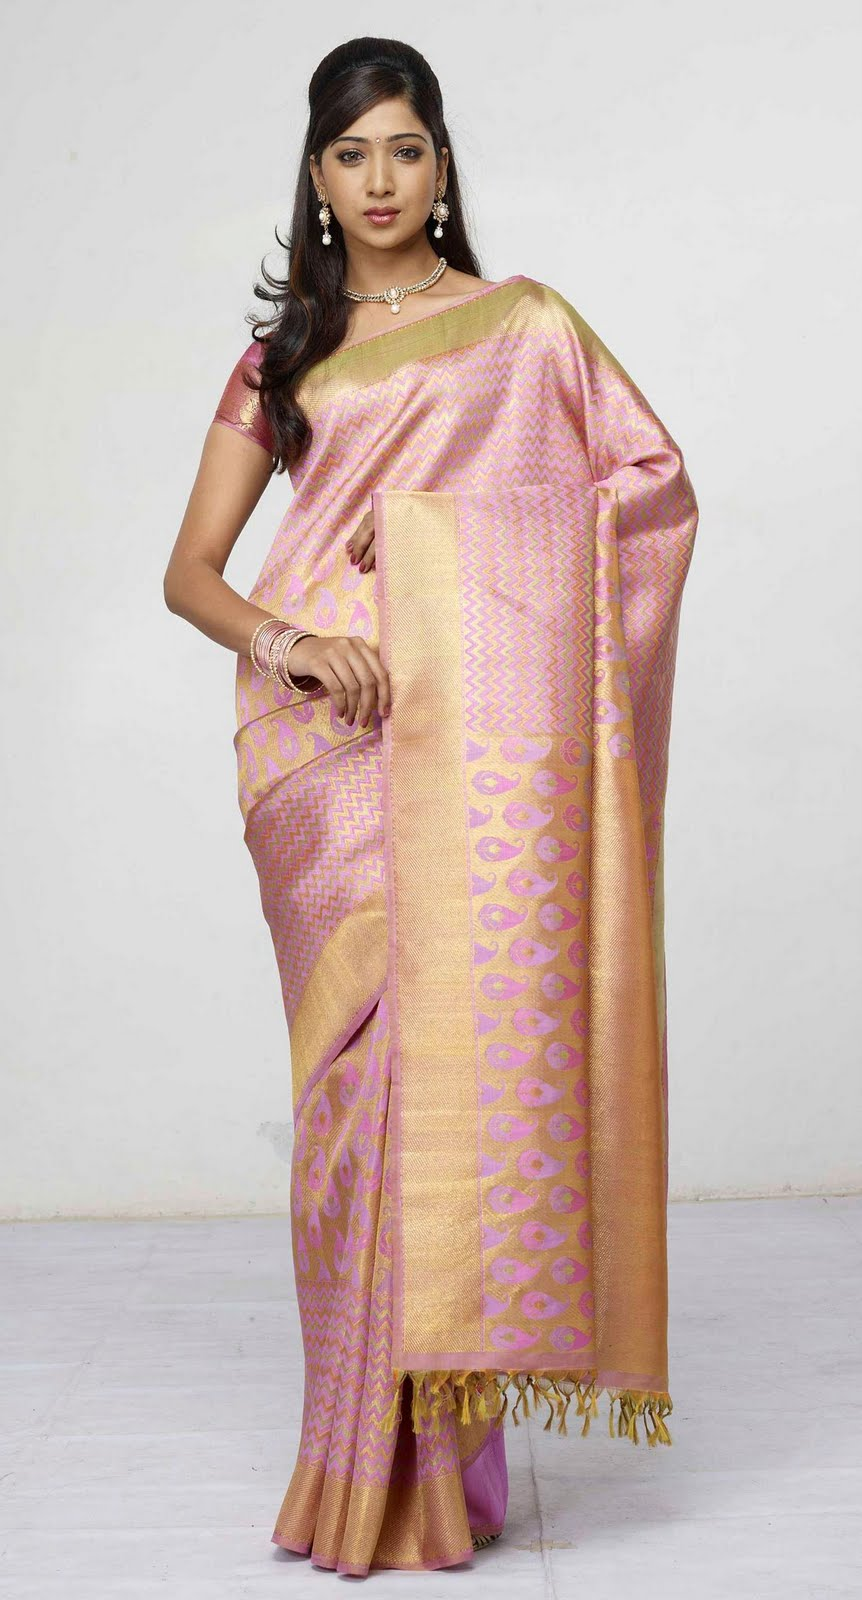 100+ Best Saree Images Free Download (2019) | Happy Holi 2019